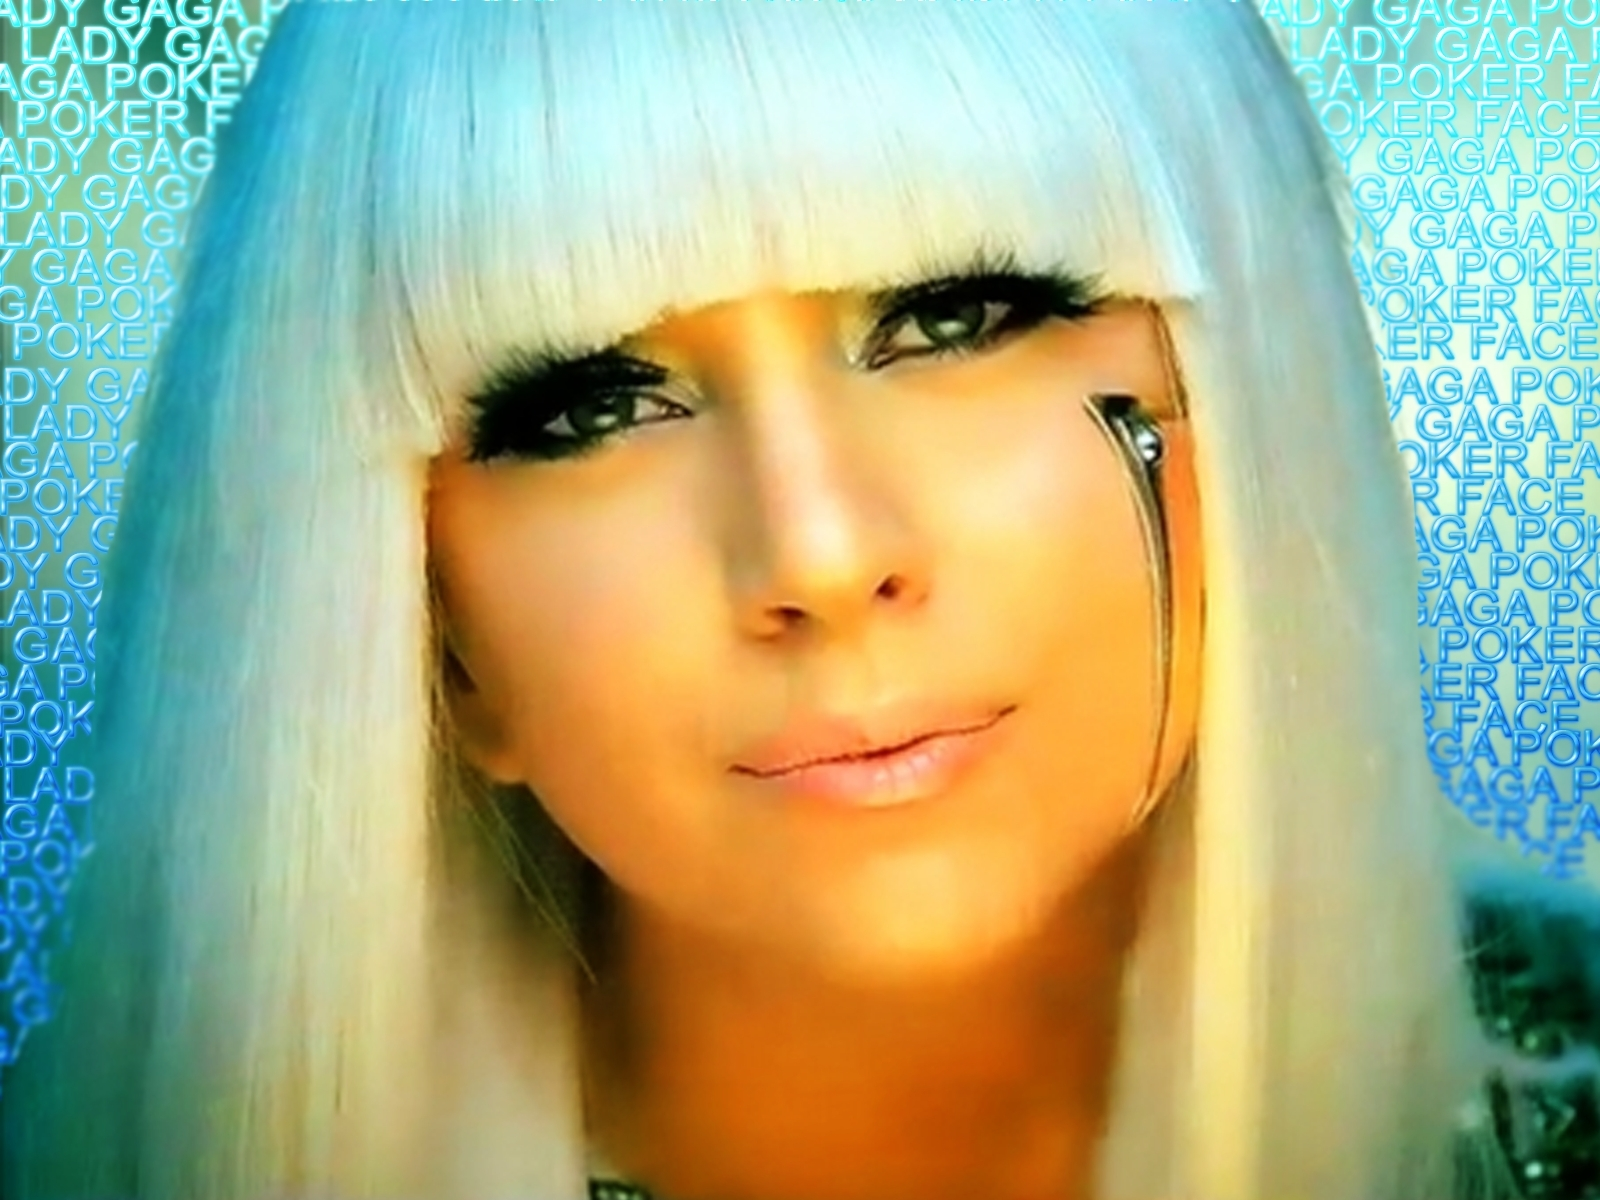 Lady Gaga Face